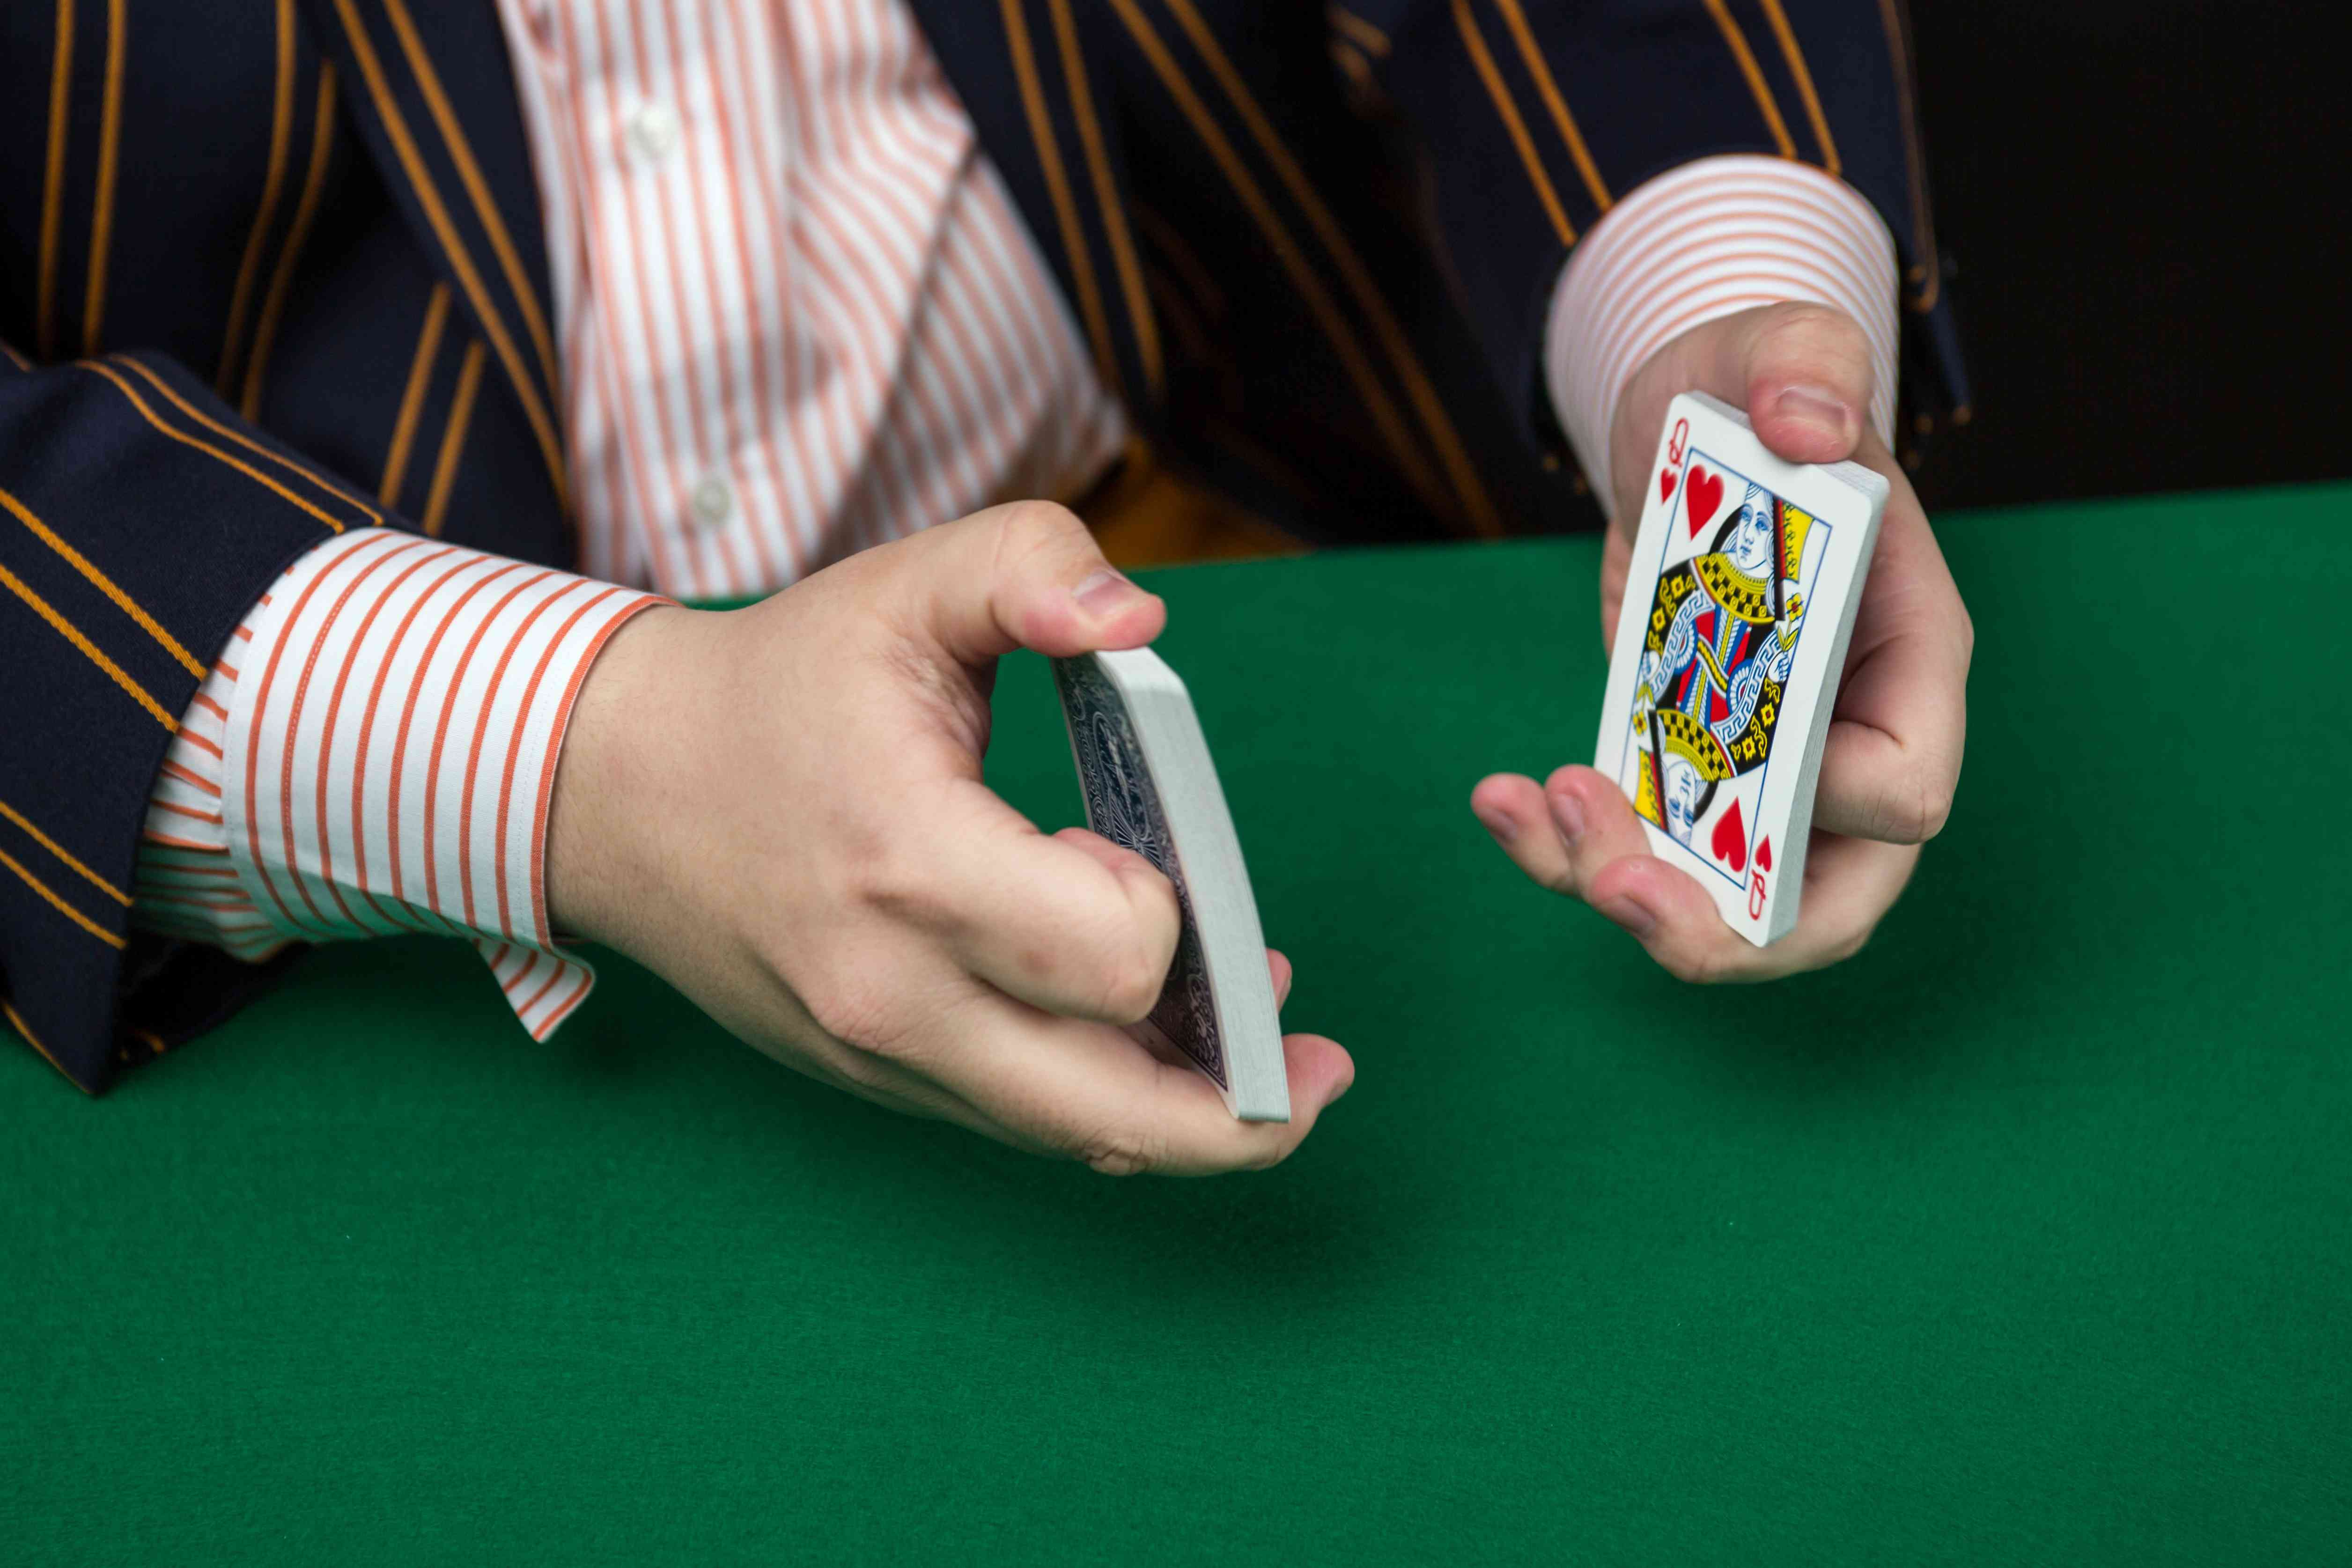 One half of the deck of cards is in each hand